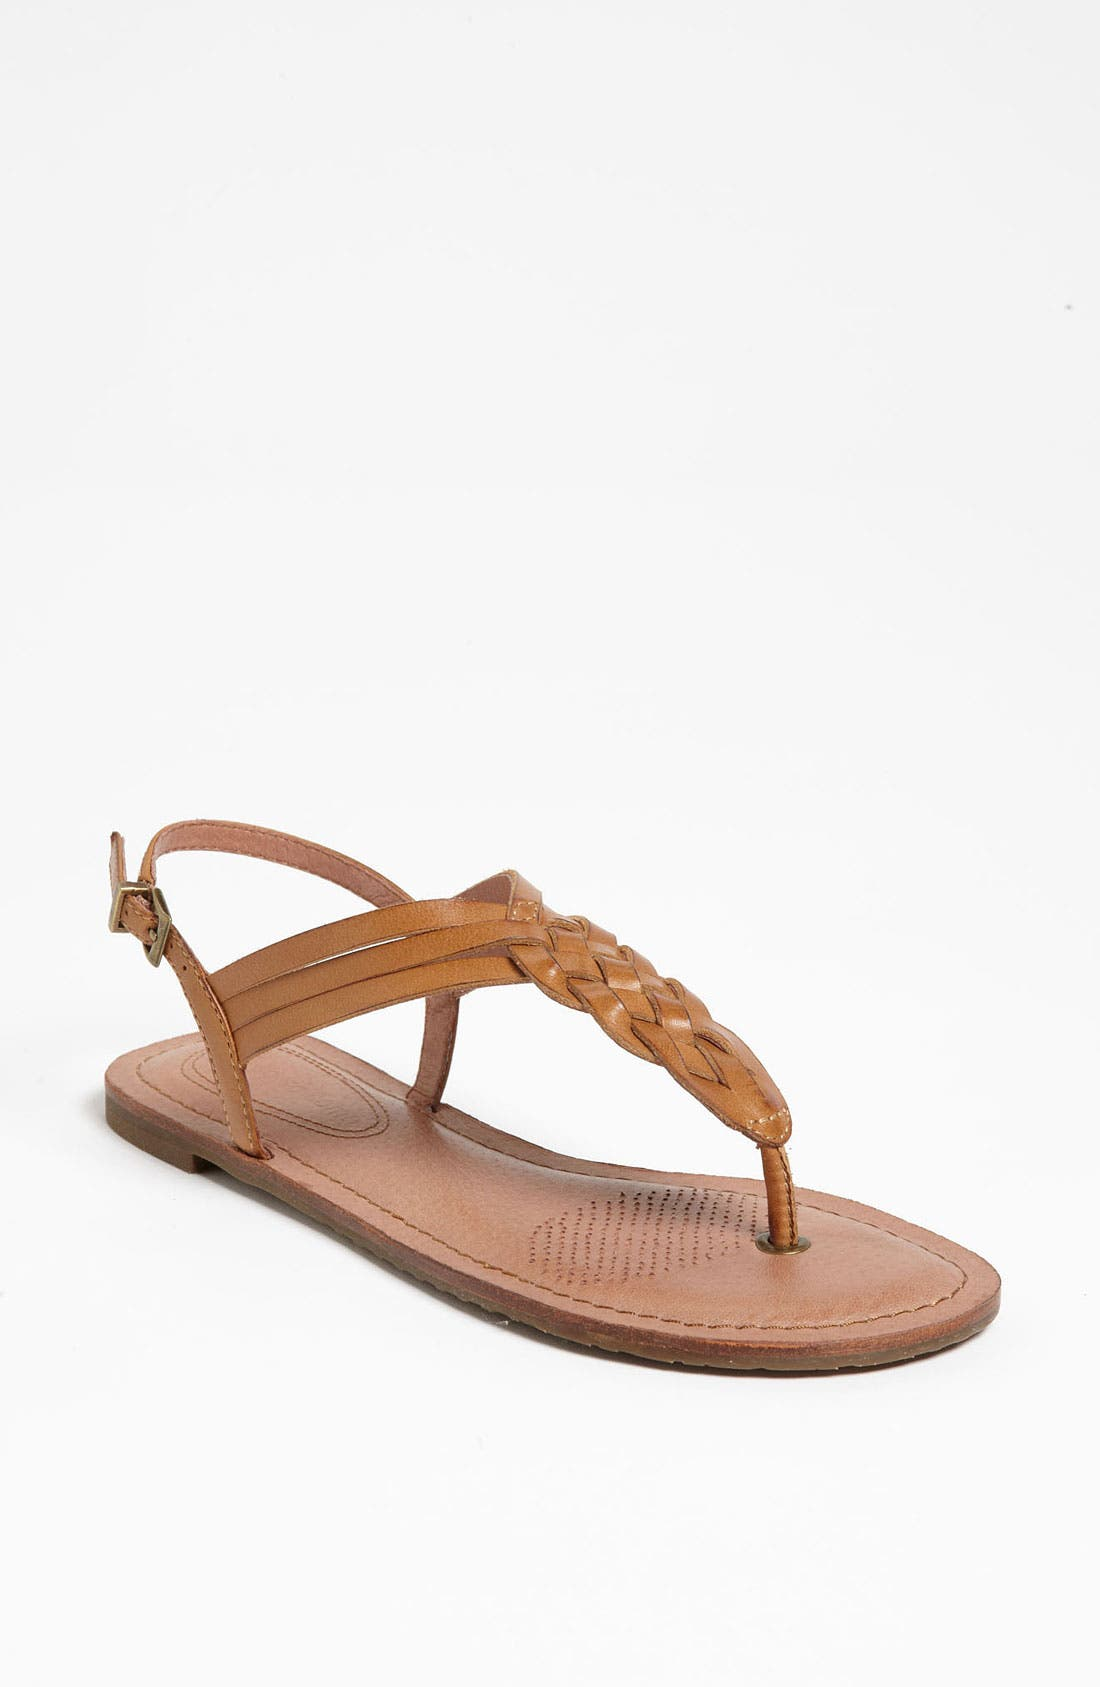 Main Image - Corso Como 'Friendship' Sandal